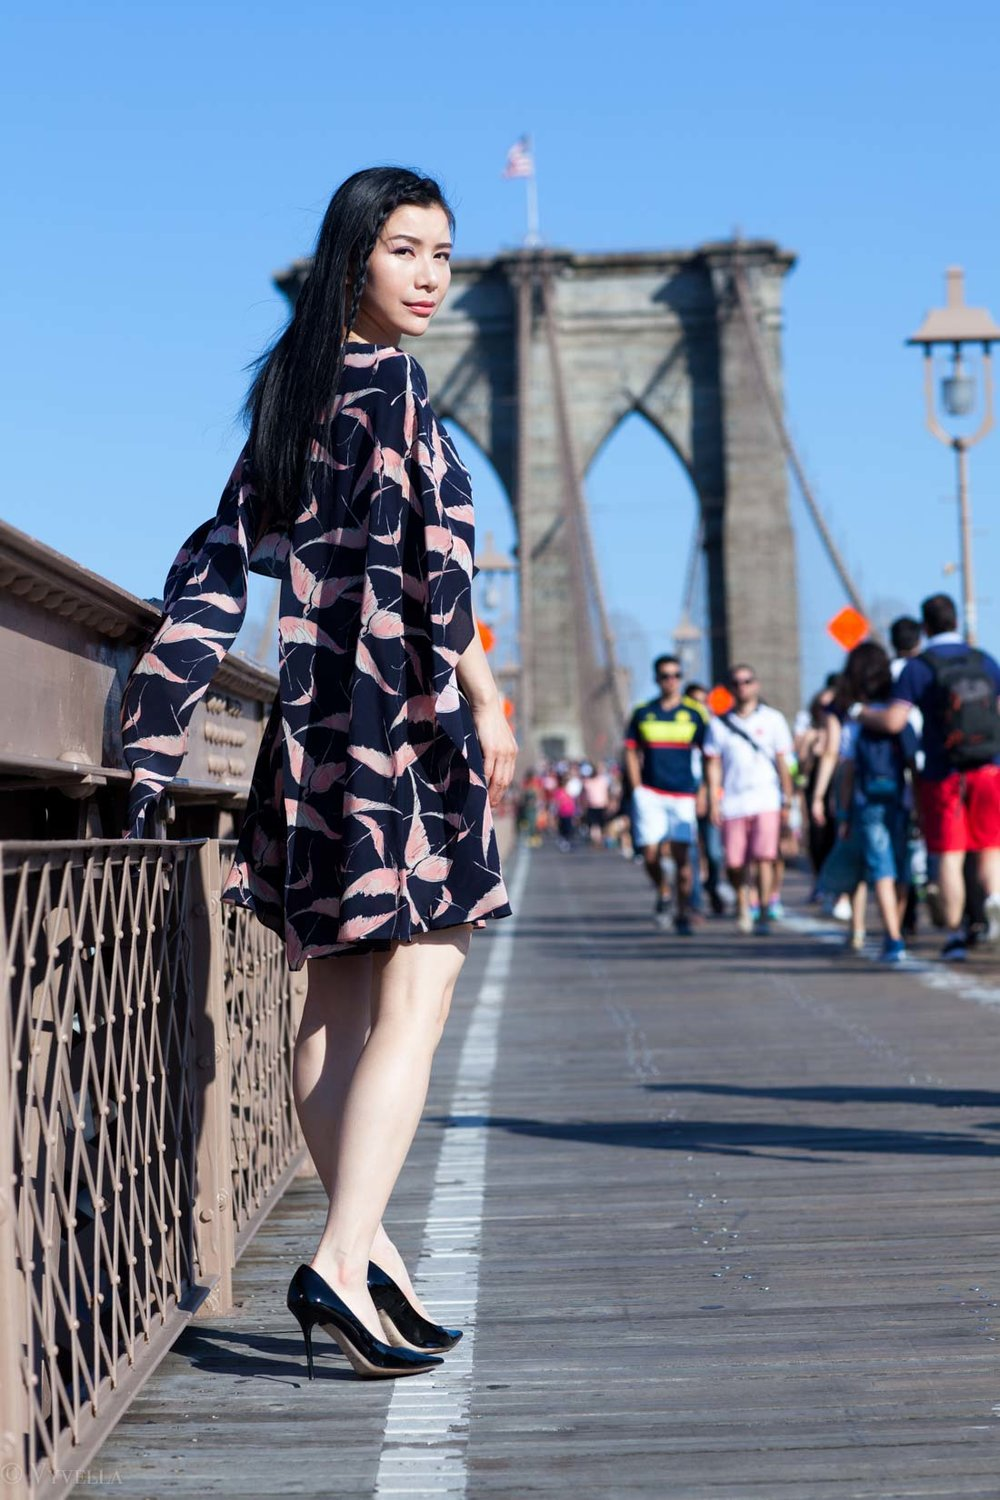 travel_brooklyn-bridge_04.jpg